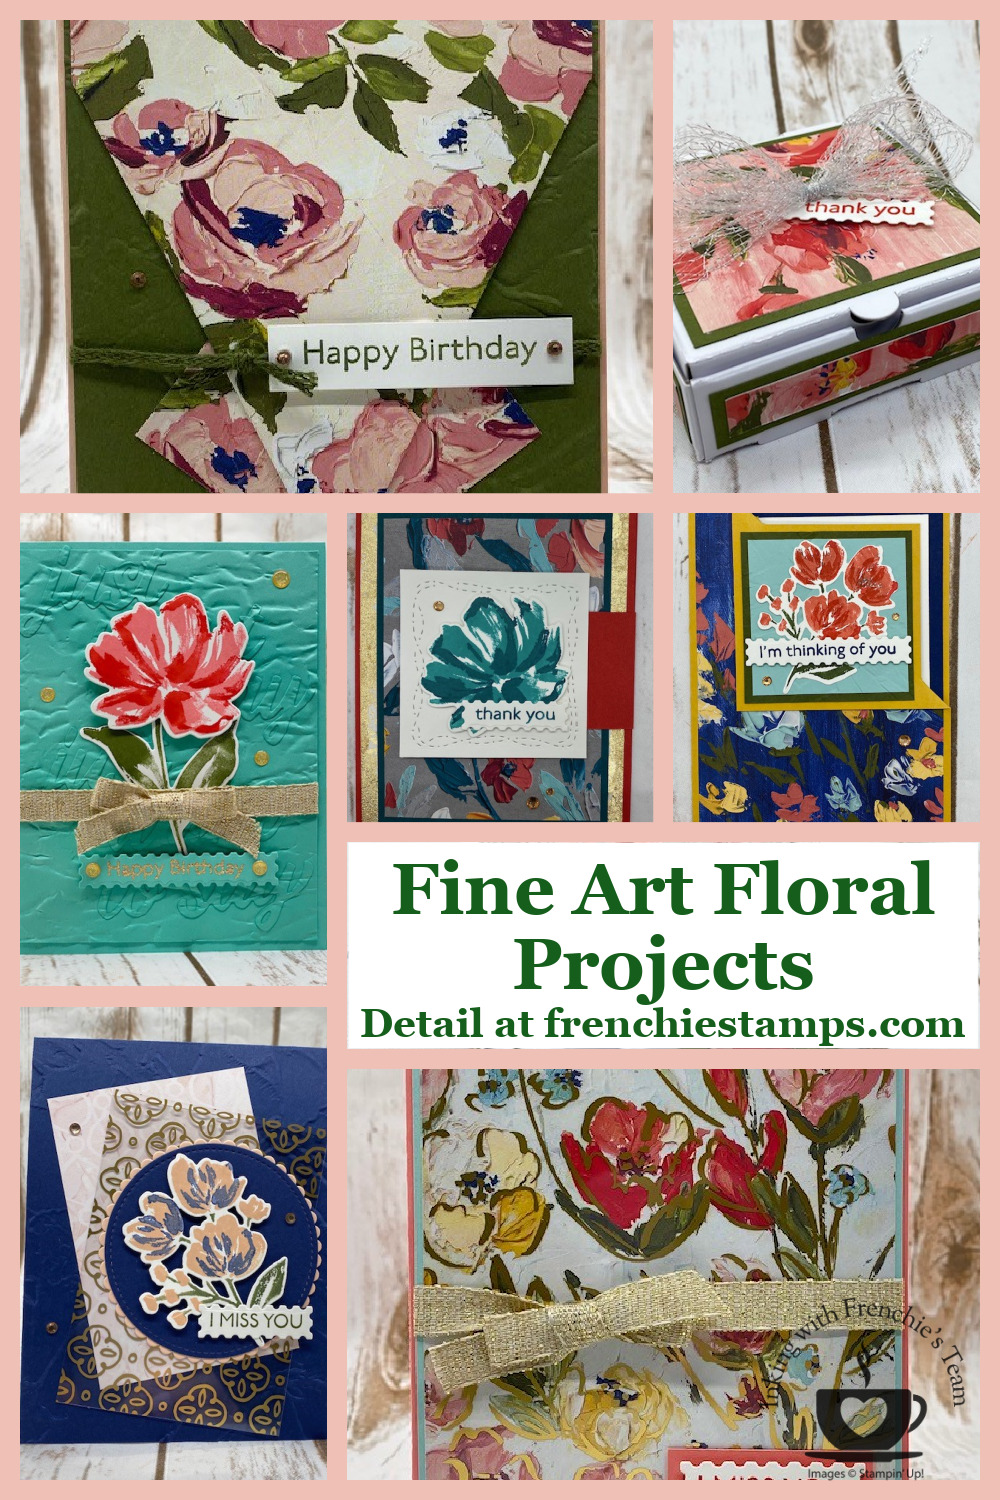 Fine Art Floral Suite Projects For Customer Appreciation